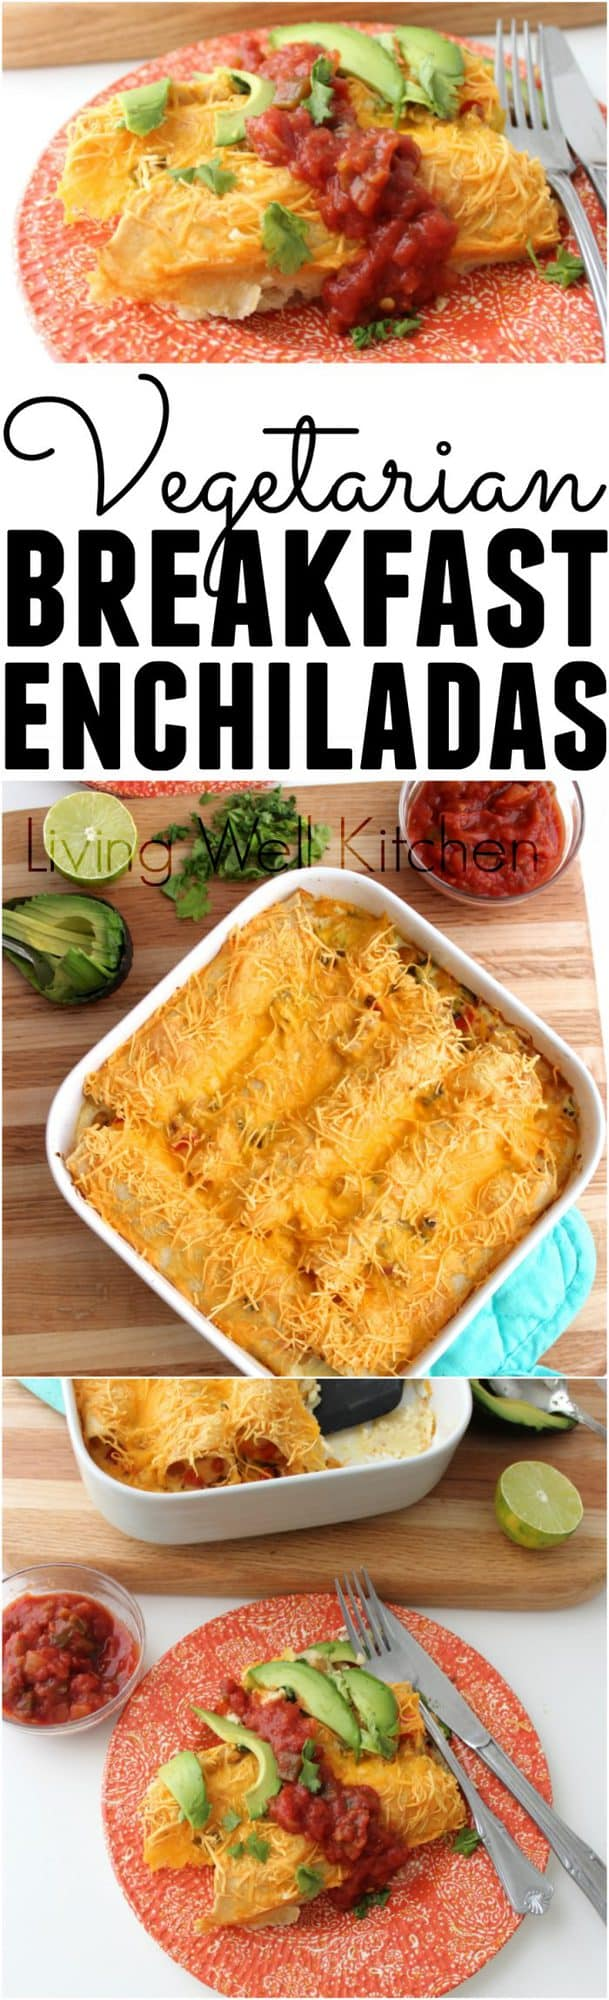 Vegetarian Breakfast Enchiladas make breakfast something to look forward to. Plus they're full of veggies, protein and healthy carbs to keep you full for hours. Vegetarian Breakfast Enchiladas recipe from @memeinge are great for the first meal of the day, or make in the morning and enjoy for dinner!